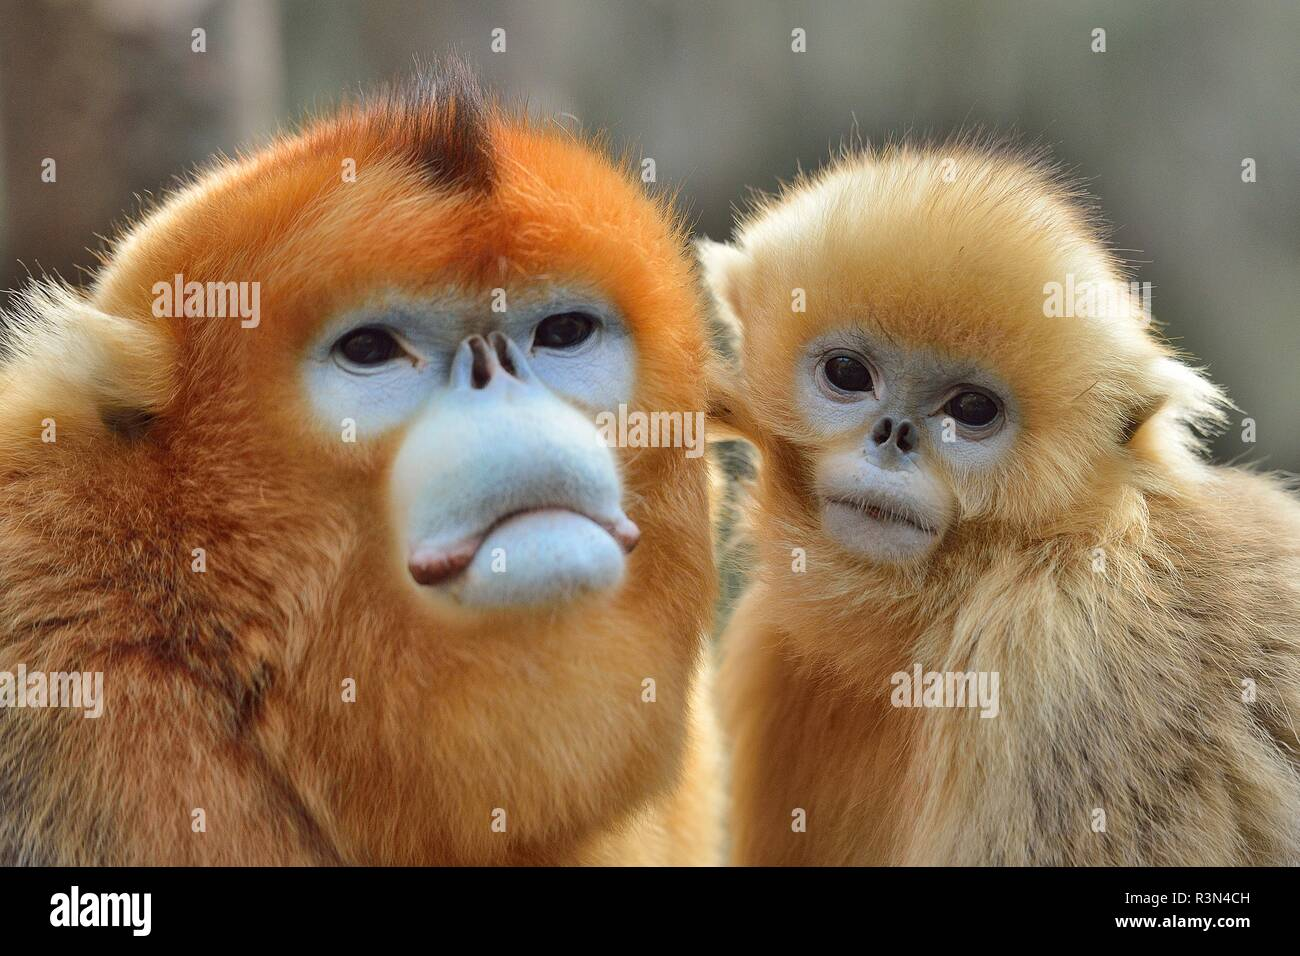 Golden snub-nosed monkey (Pygathrix roxellana) and young, Shannxi Province, China - Stock Image